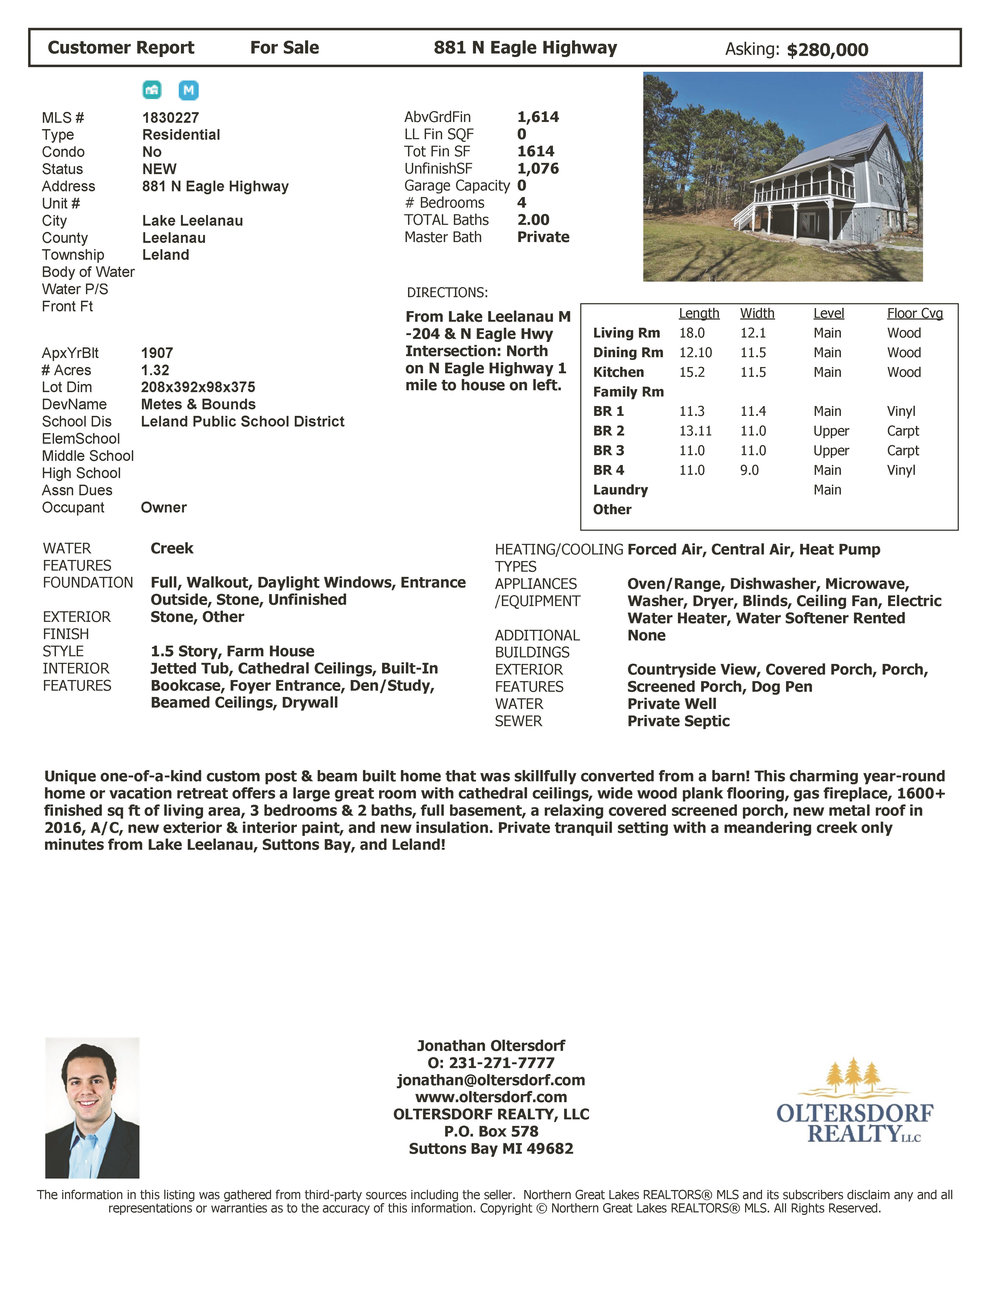 881 N Eagle Highway, Lake Leelanau, MI – Unique Post & Beam Home For Sale By Oltersdorf Realty LLC - Marketing Packet (8).jpg